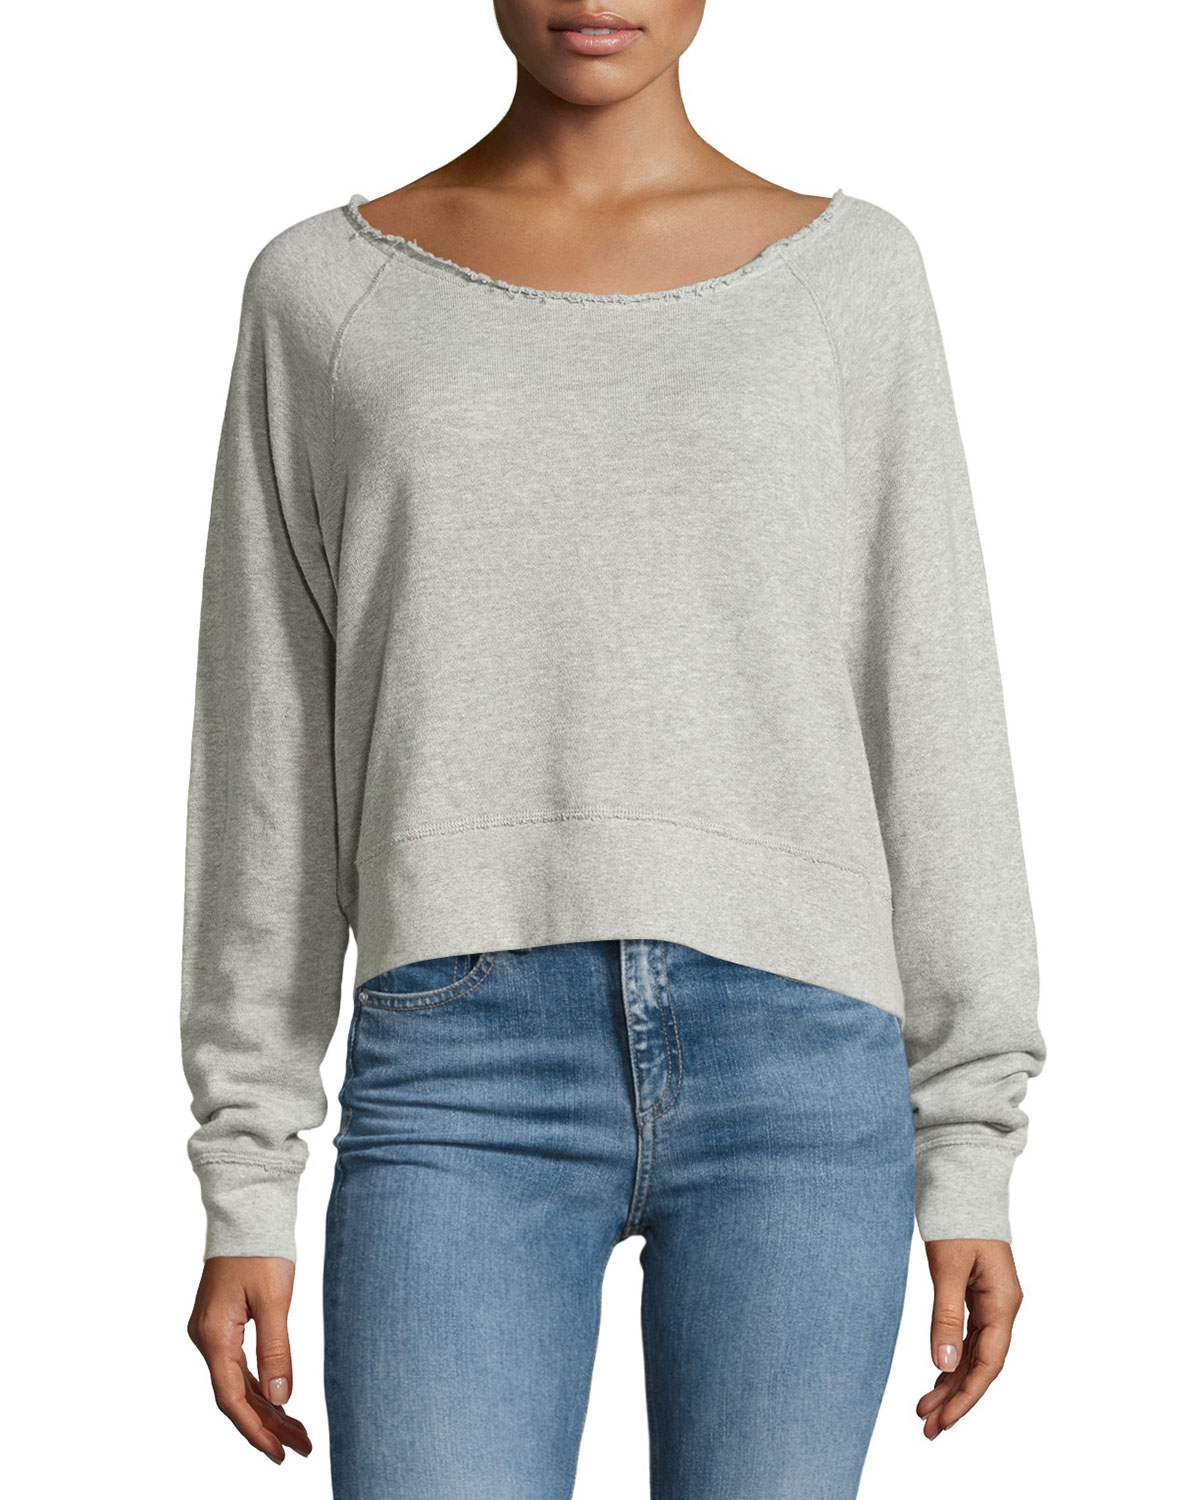 Discount Collections Clearance Reliable Rag & Bone raw neck sweatshirt Recommend Discount Discount Order D11MLjTHw